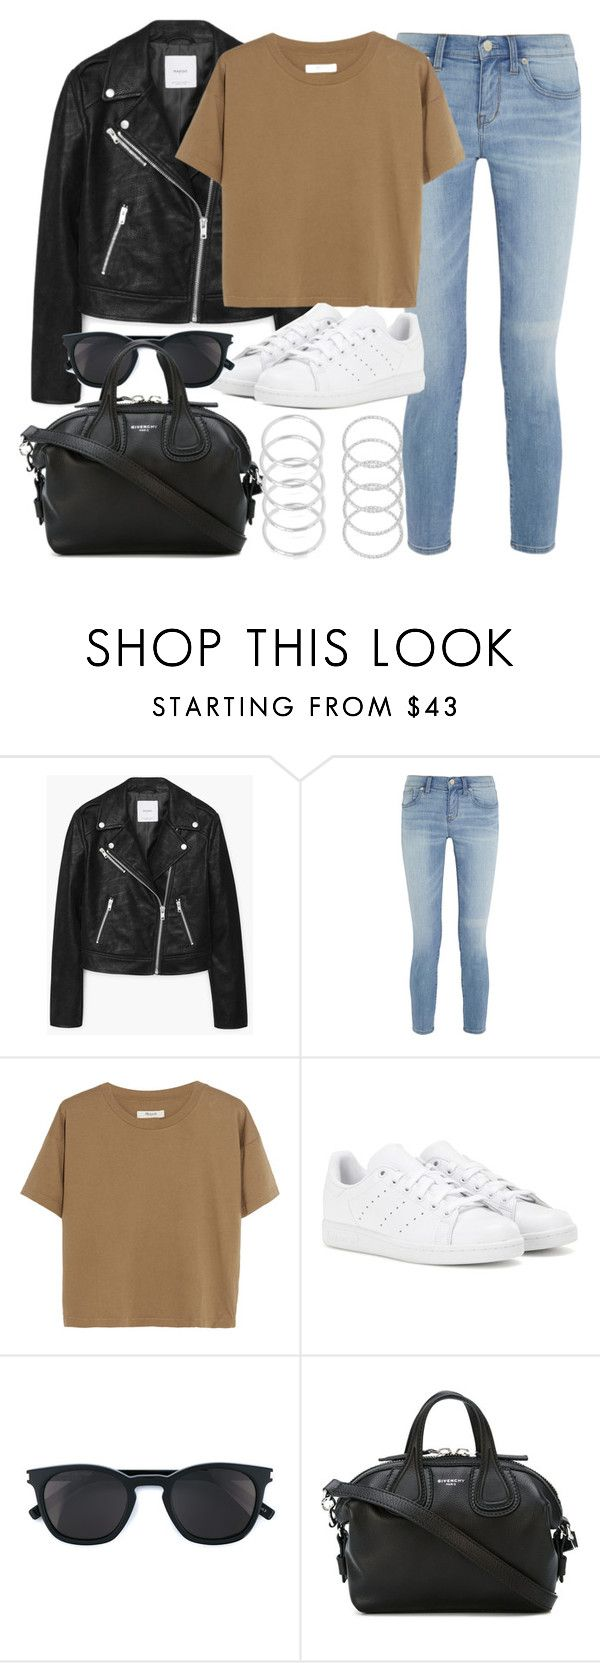 """""""Style #11364"""" by vany-alvarado ❤ liked on Polyvore featuring MANGO, Madewell, adidas, Yves Saint Laurent and Givenchy"""